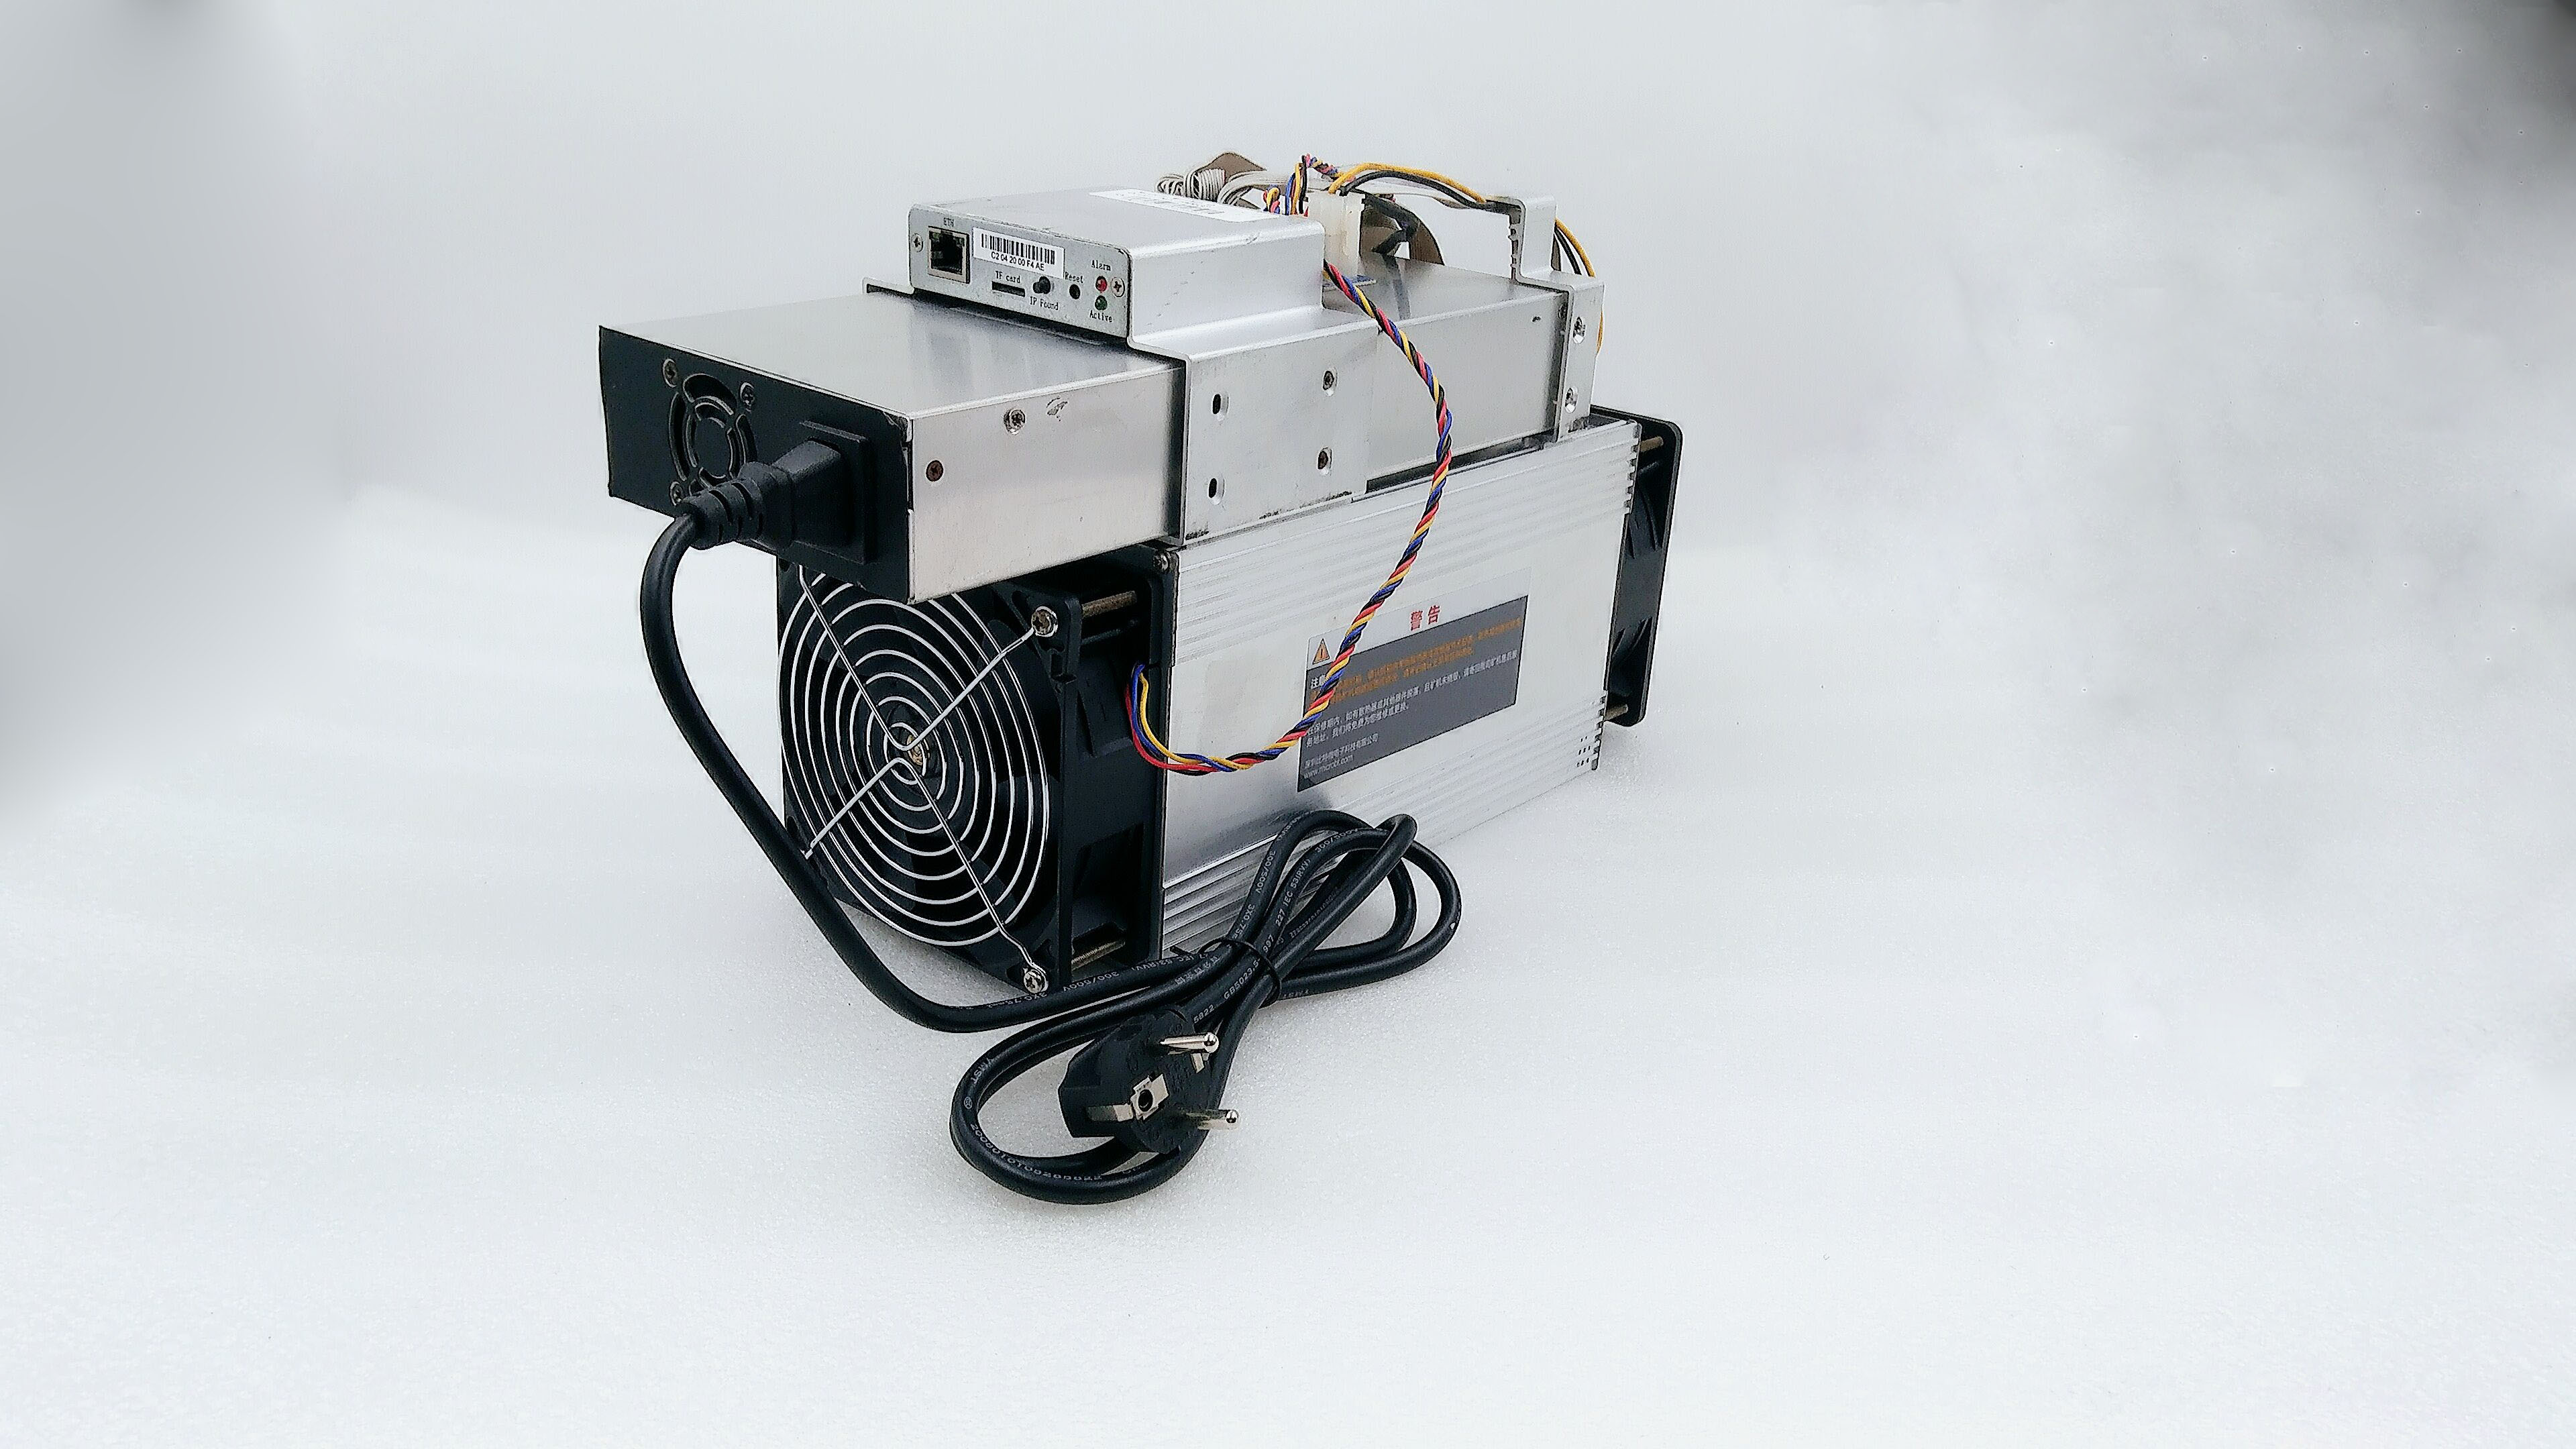 Used Asic BTC BCH Miner WhatsMiner M1 11.5T-12.5T Economic Than Antminer S9 S11 S15 T15 T9 Z9 B7 WhatsMiner M3 M3X M10